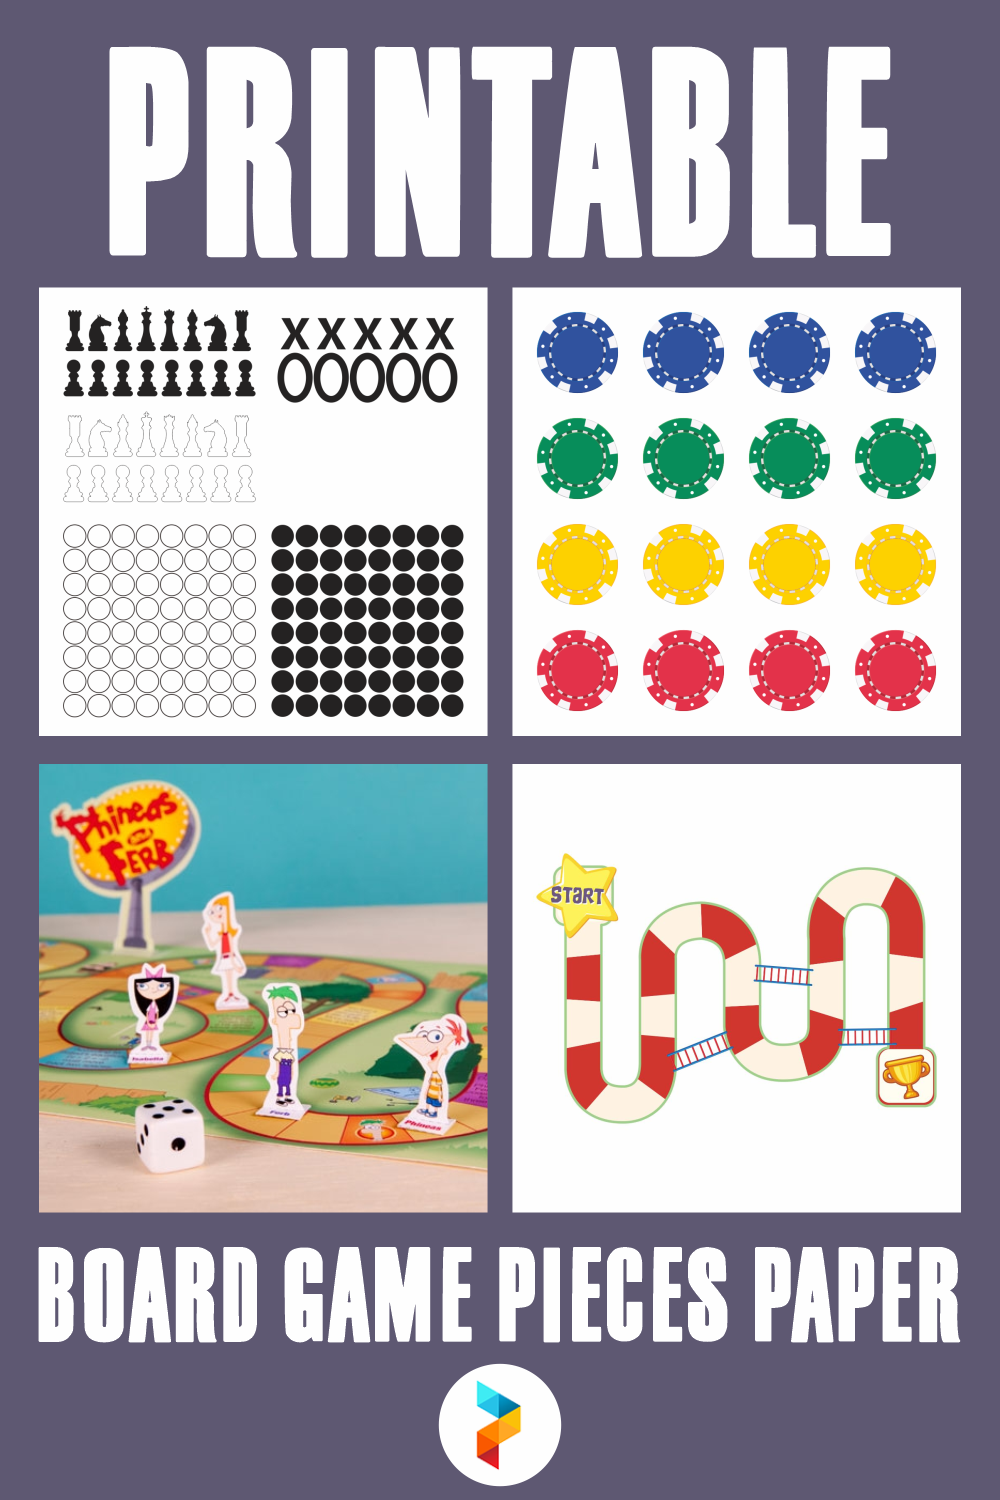 Printable Board Game Pieces Paper